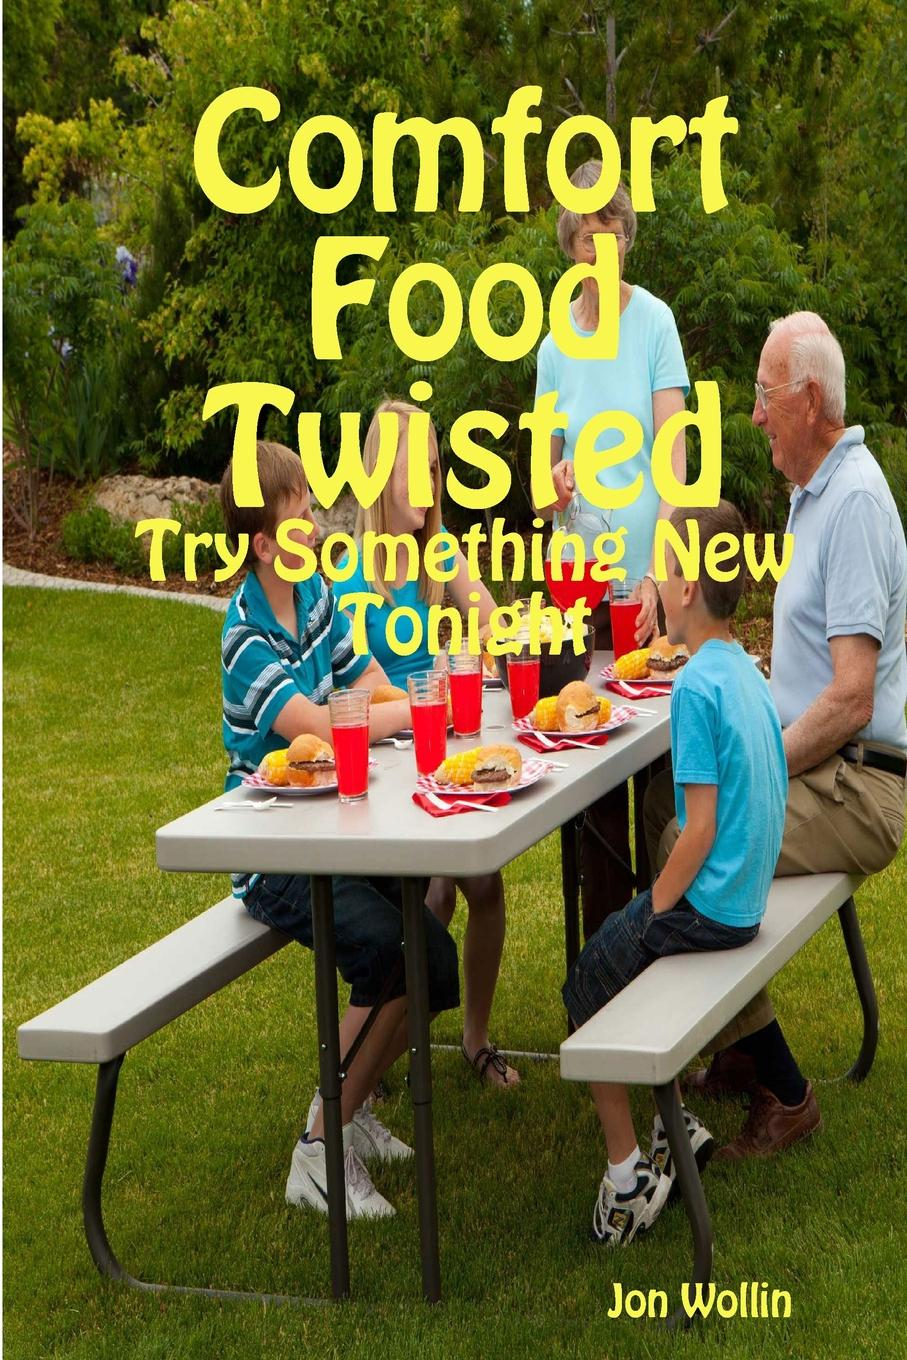 Jon Wollin Comfort Food Twisted kaylee berry lifestyle blog planner journal lifestyle blogging content planner never run out of things to blog about again